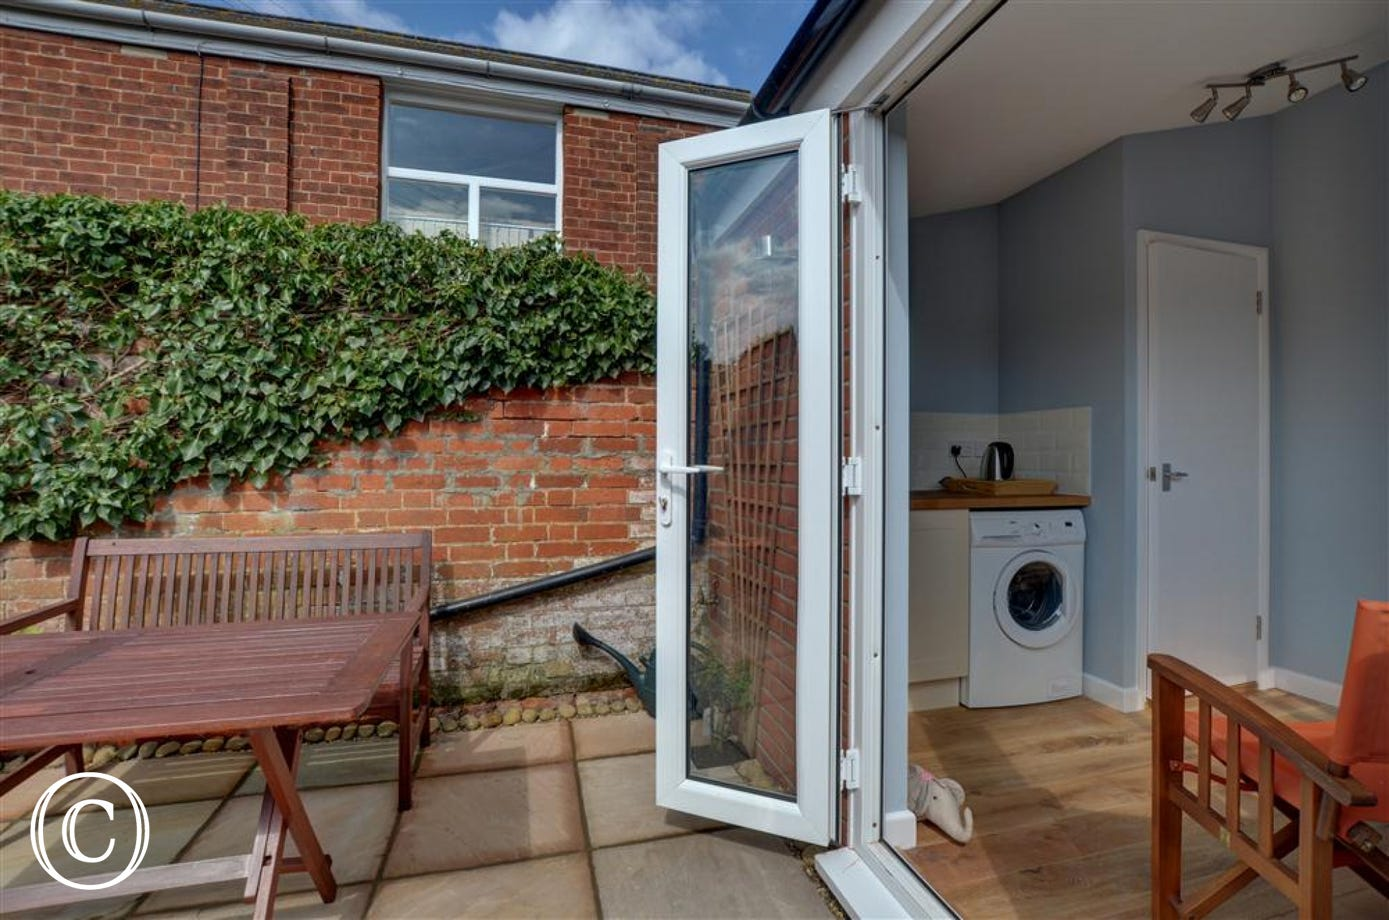 This garden room with sink kettle and washing machine makes a good area to prep for afternoon tea in the courtyard garden.